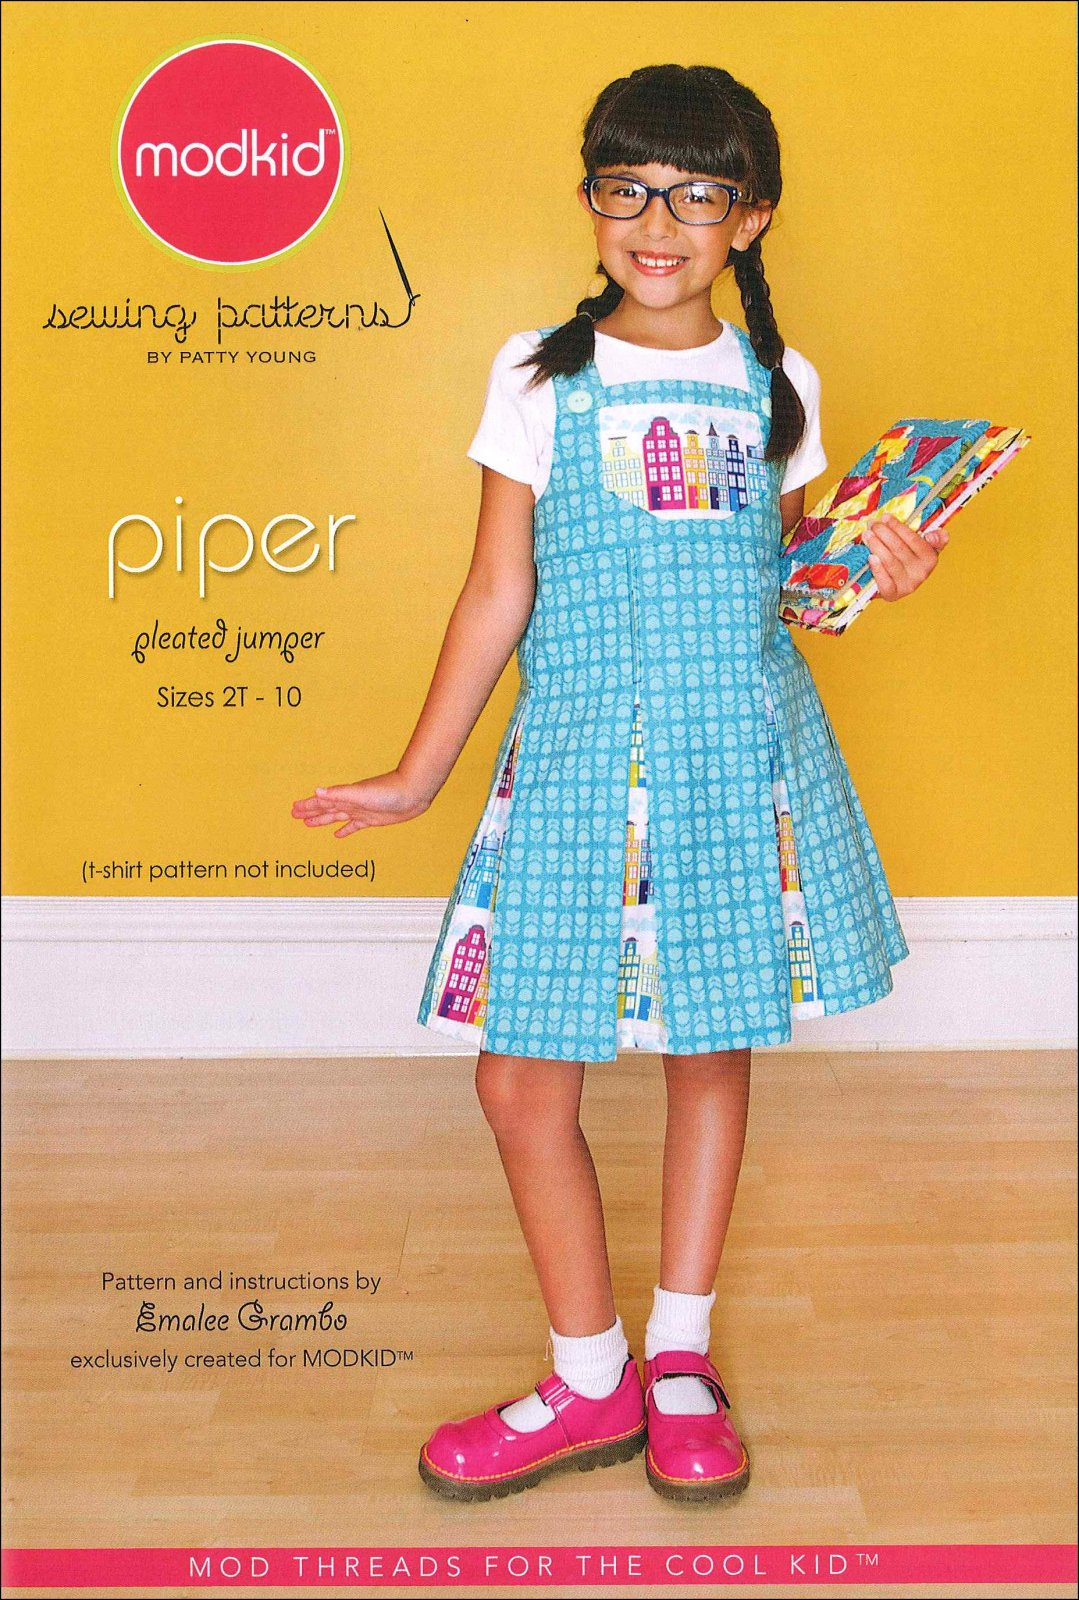 Piper Pleated Jumper